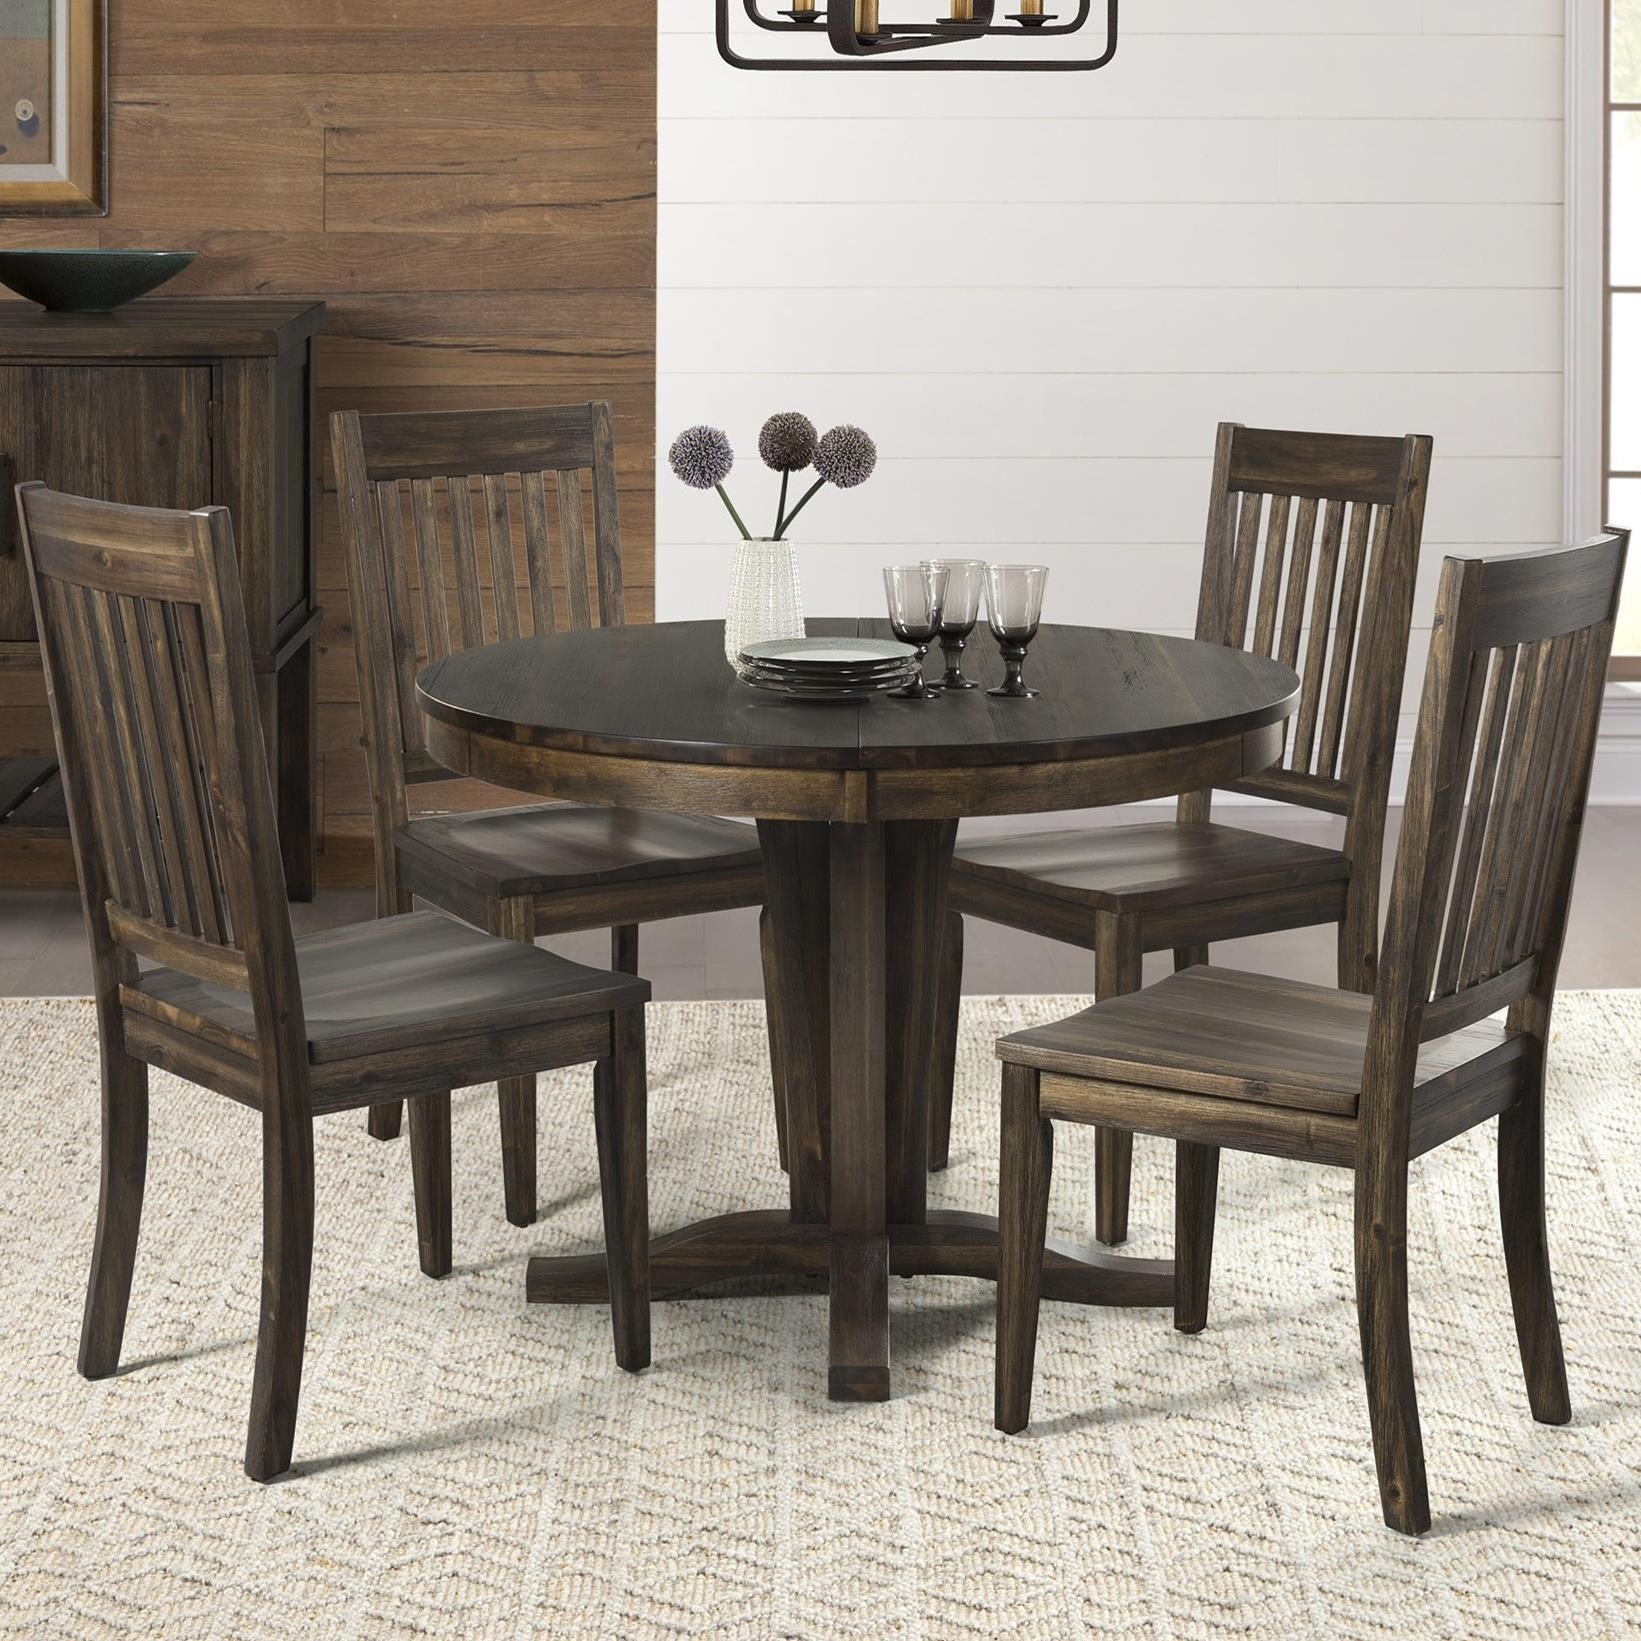 AAmerica Huron 5 Piece Pedestal Table And Slat Back Chair Set